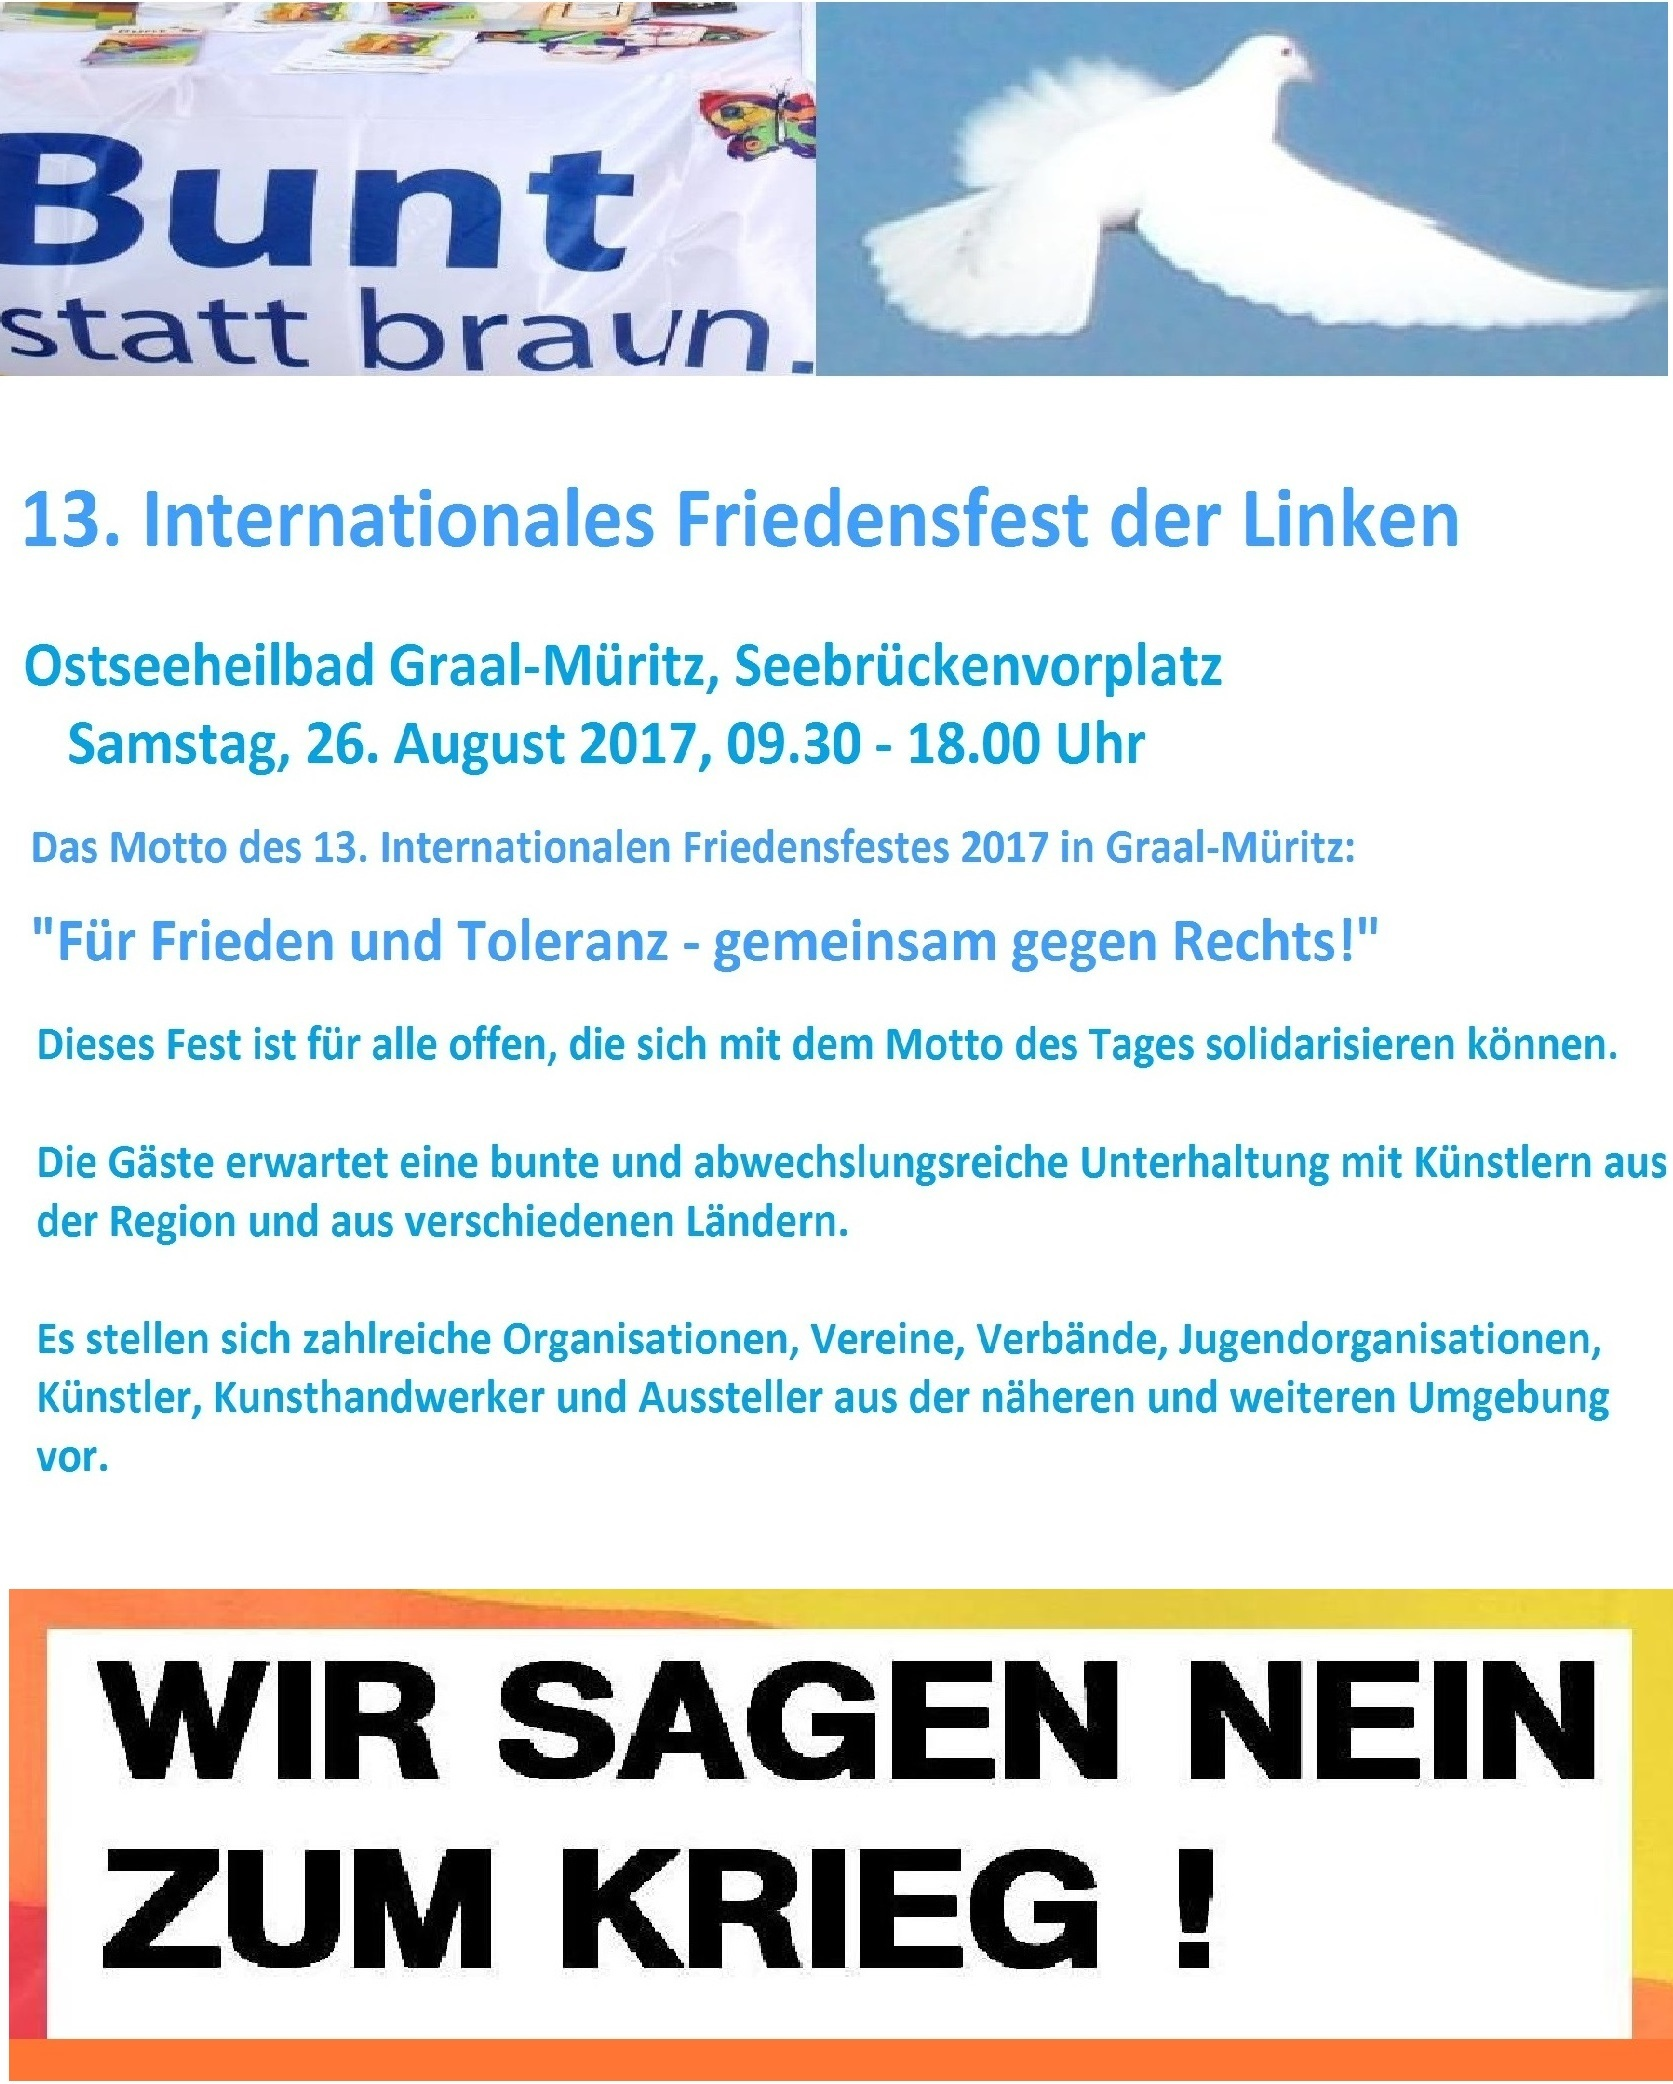 13. Internationales Friedensfest der Linken in Ostseeheilbad Graal-Müritz am 26. August 2017